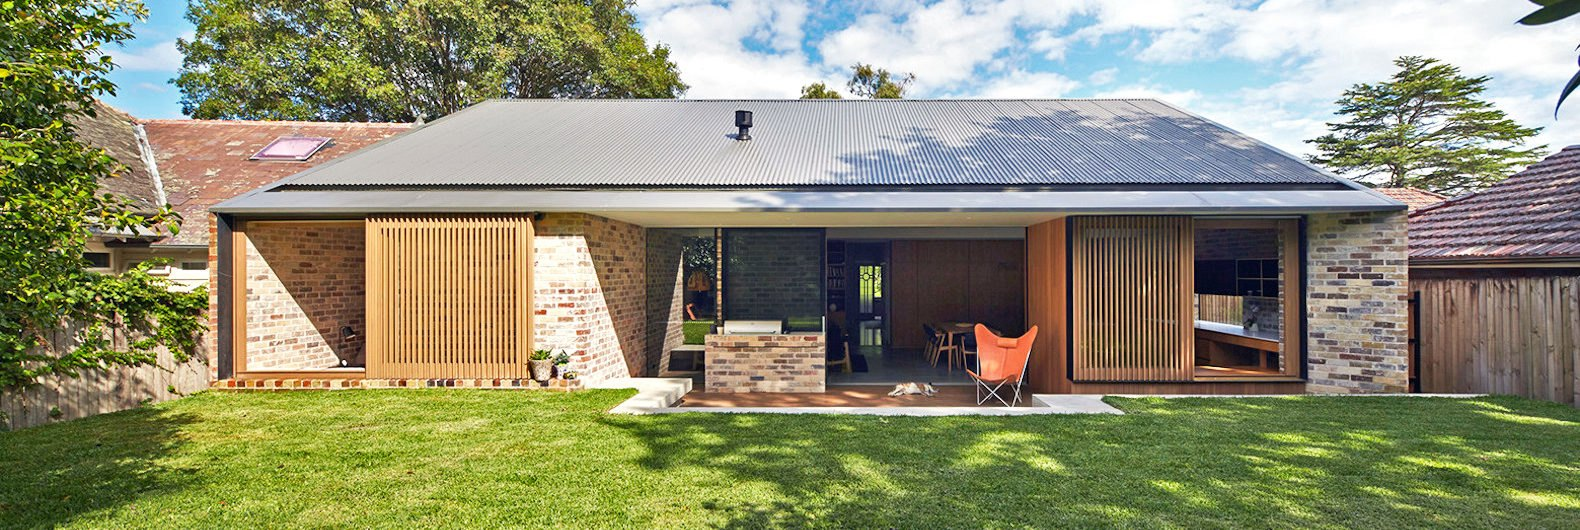 Old bungalow transformed into a light filled dwelling with recycled